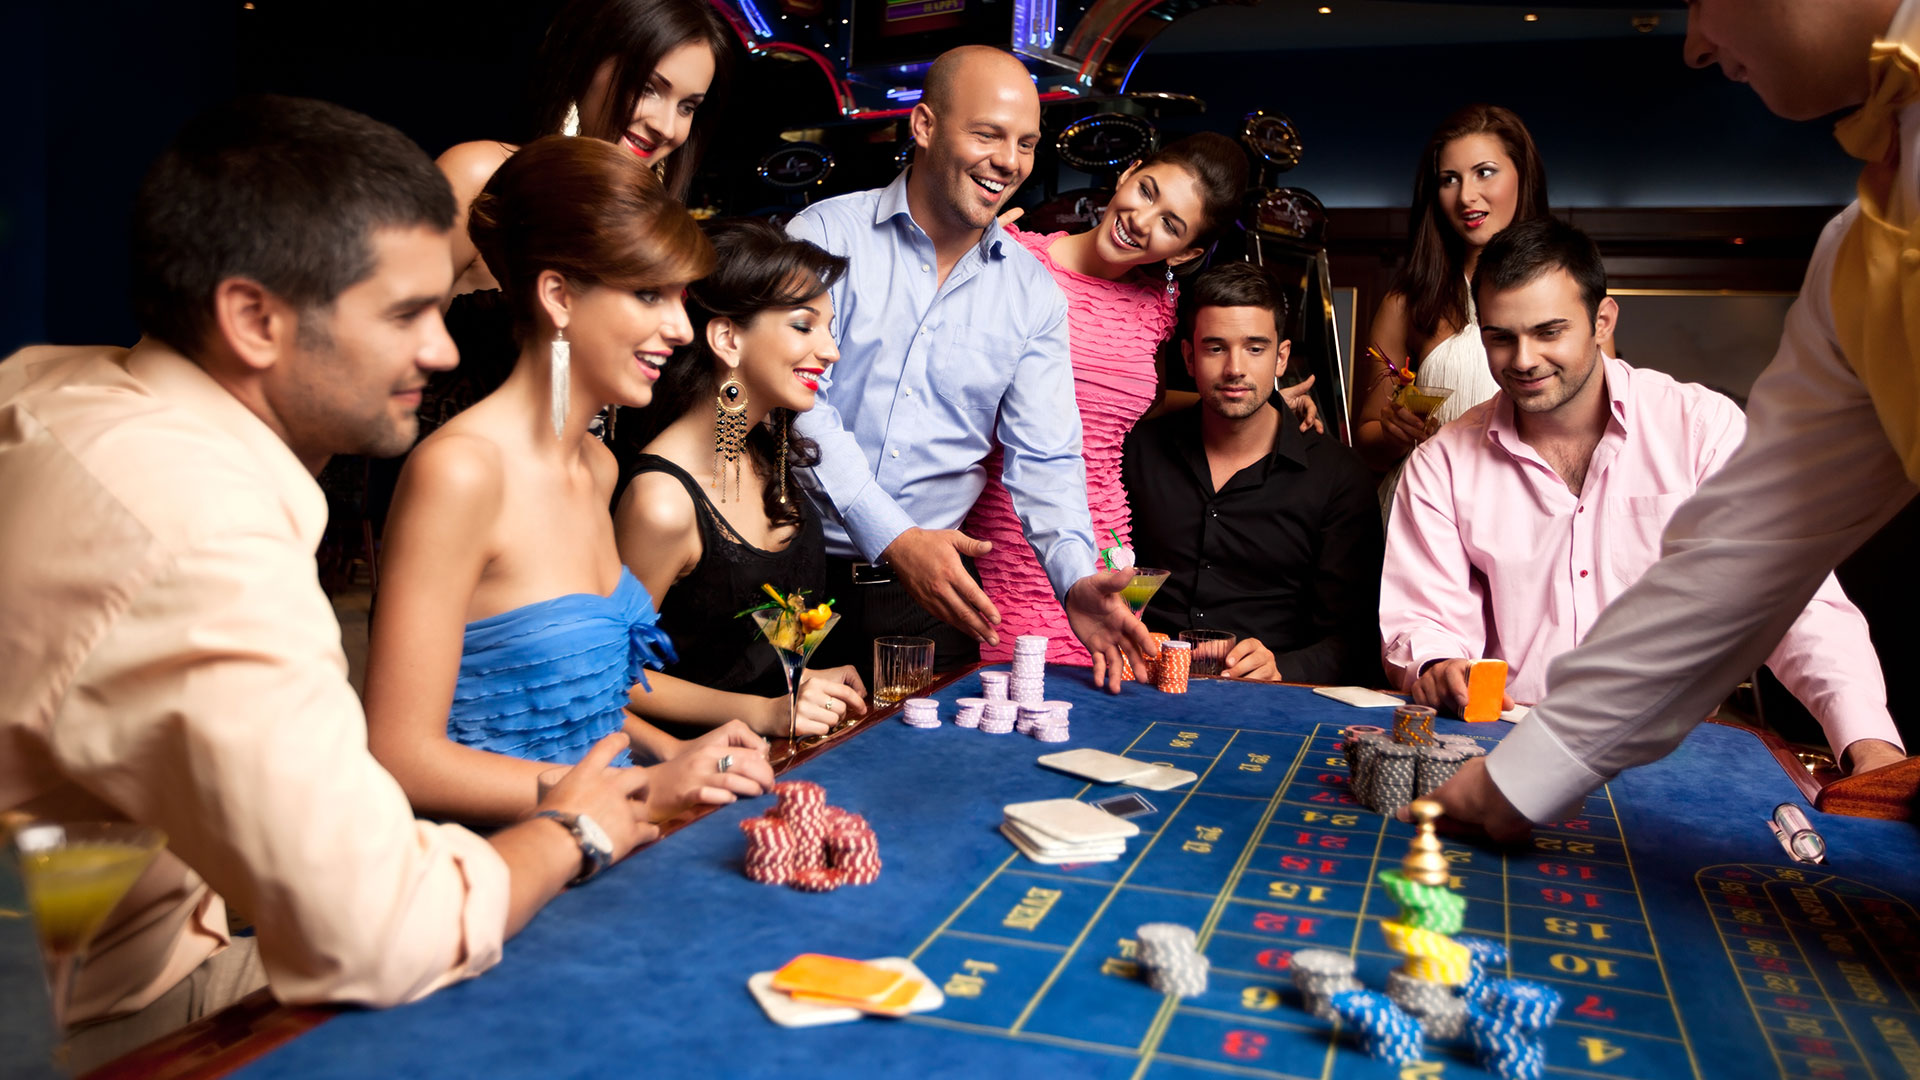 Have fun With every day casino trips